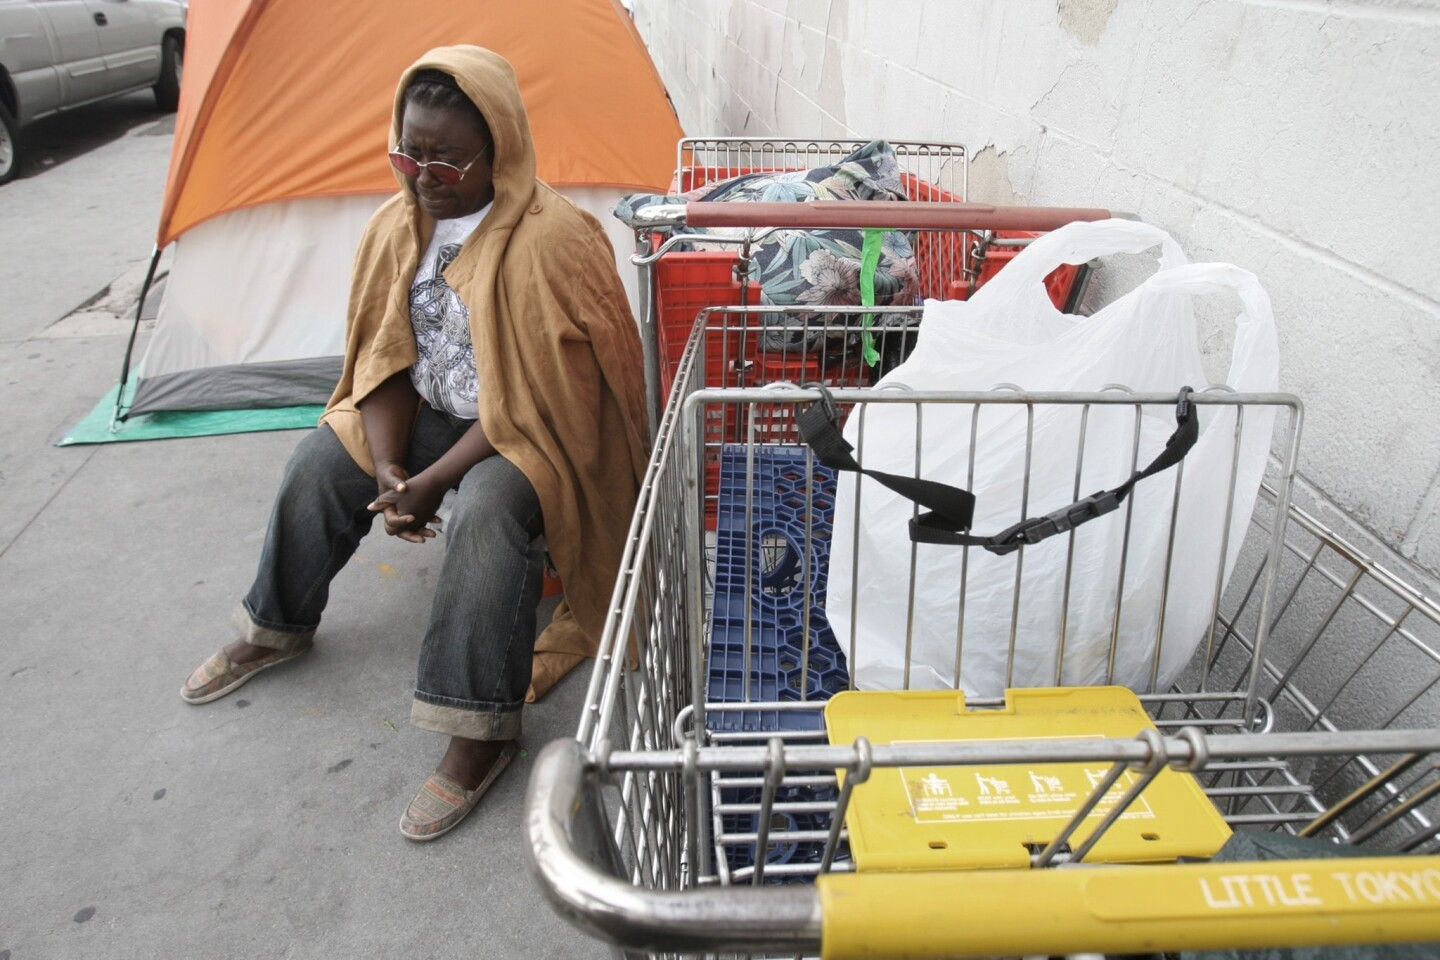 Annie Moody sits next to her tent on Towne Avenue at 6th Street on in the skid row area of Los Angeles.